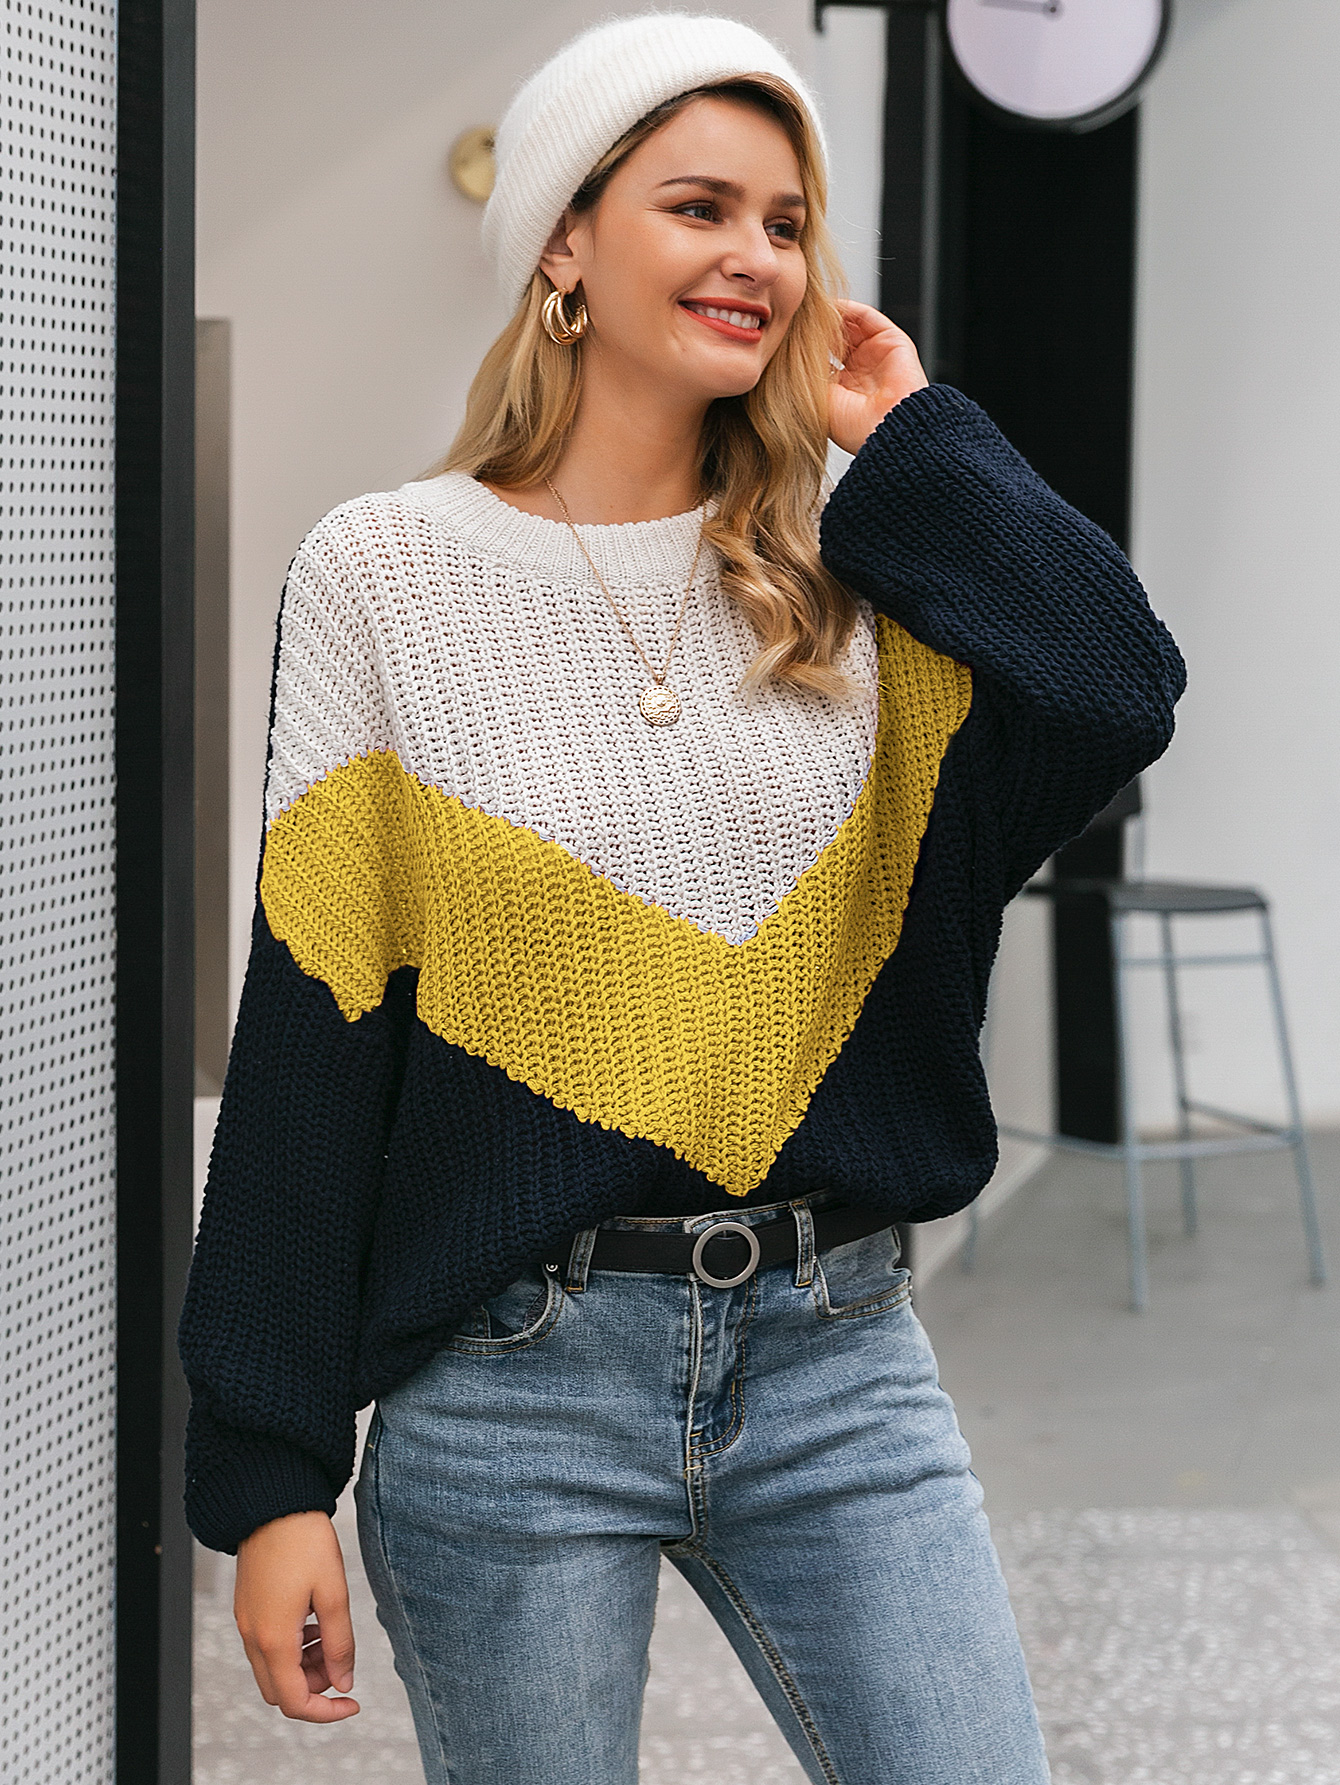 2019 new knitted tri-color stitching sweater fashion women's wholesale NHDE190181